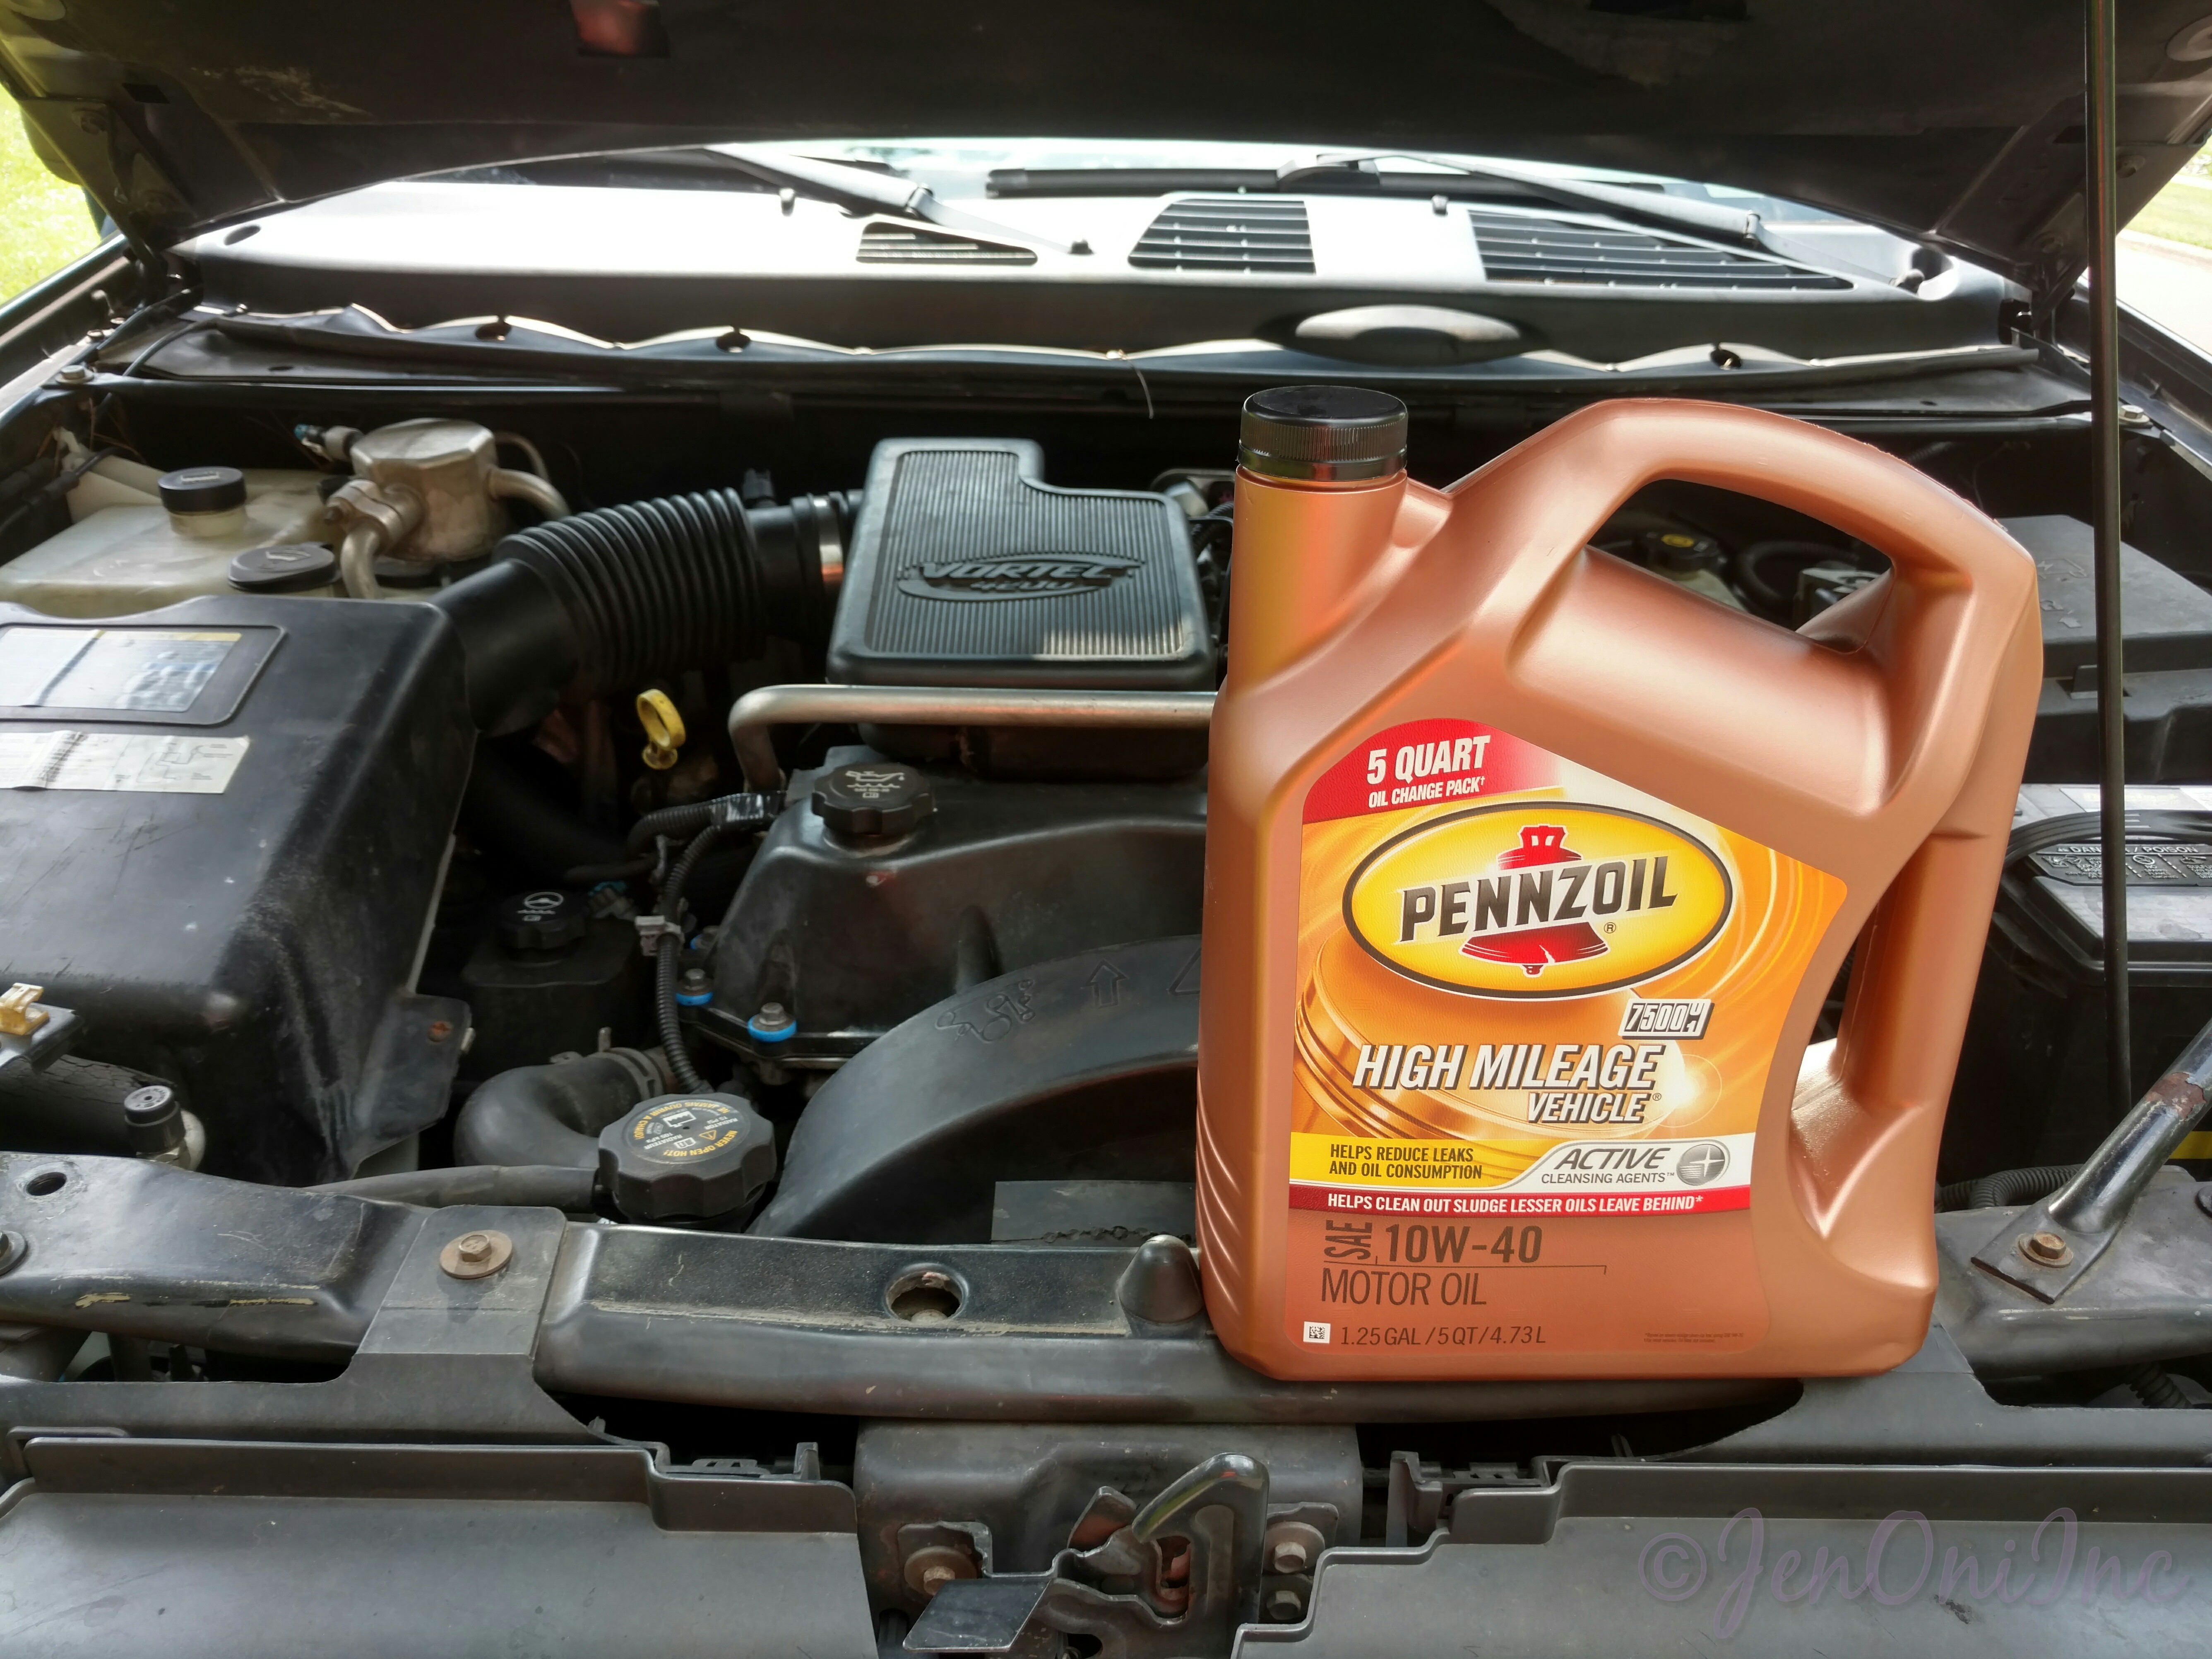 The Best Way To Purchase Pennzoil Motor Oil Jenoni